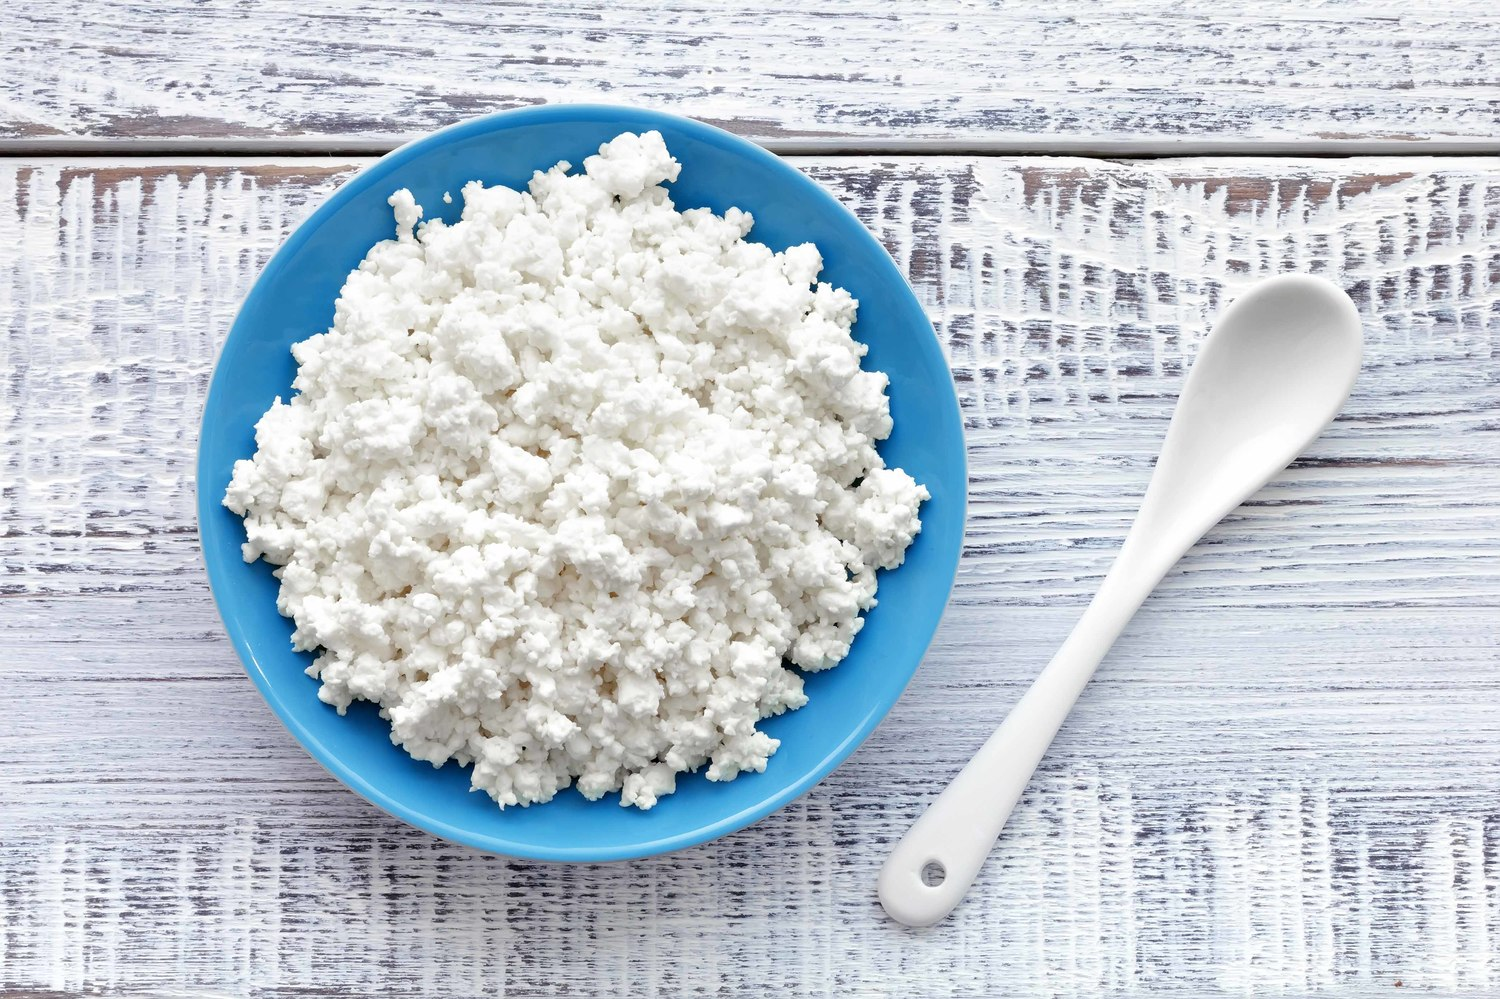 the benefits of cheese for bodybuilding and muscle growth